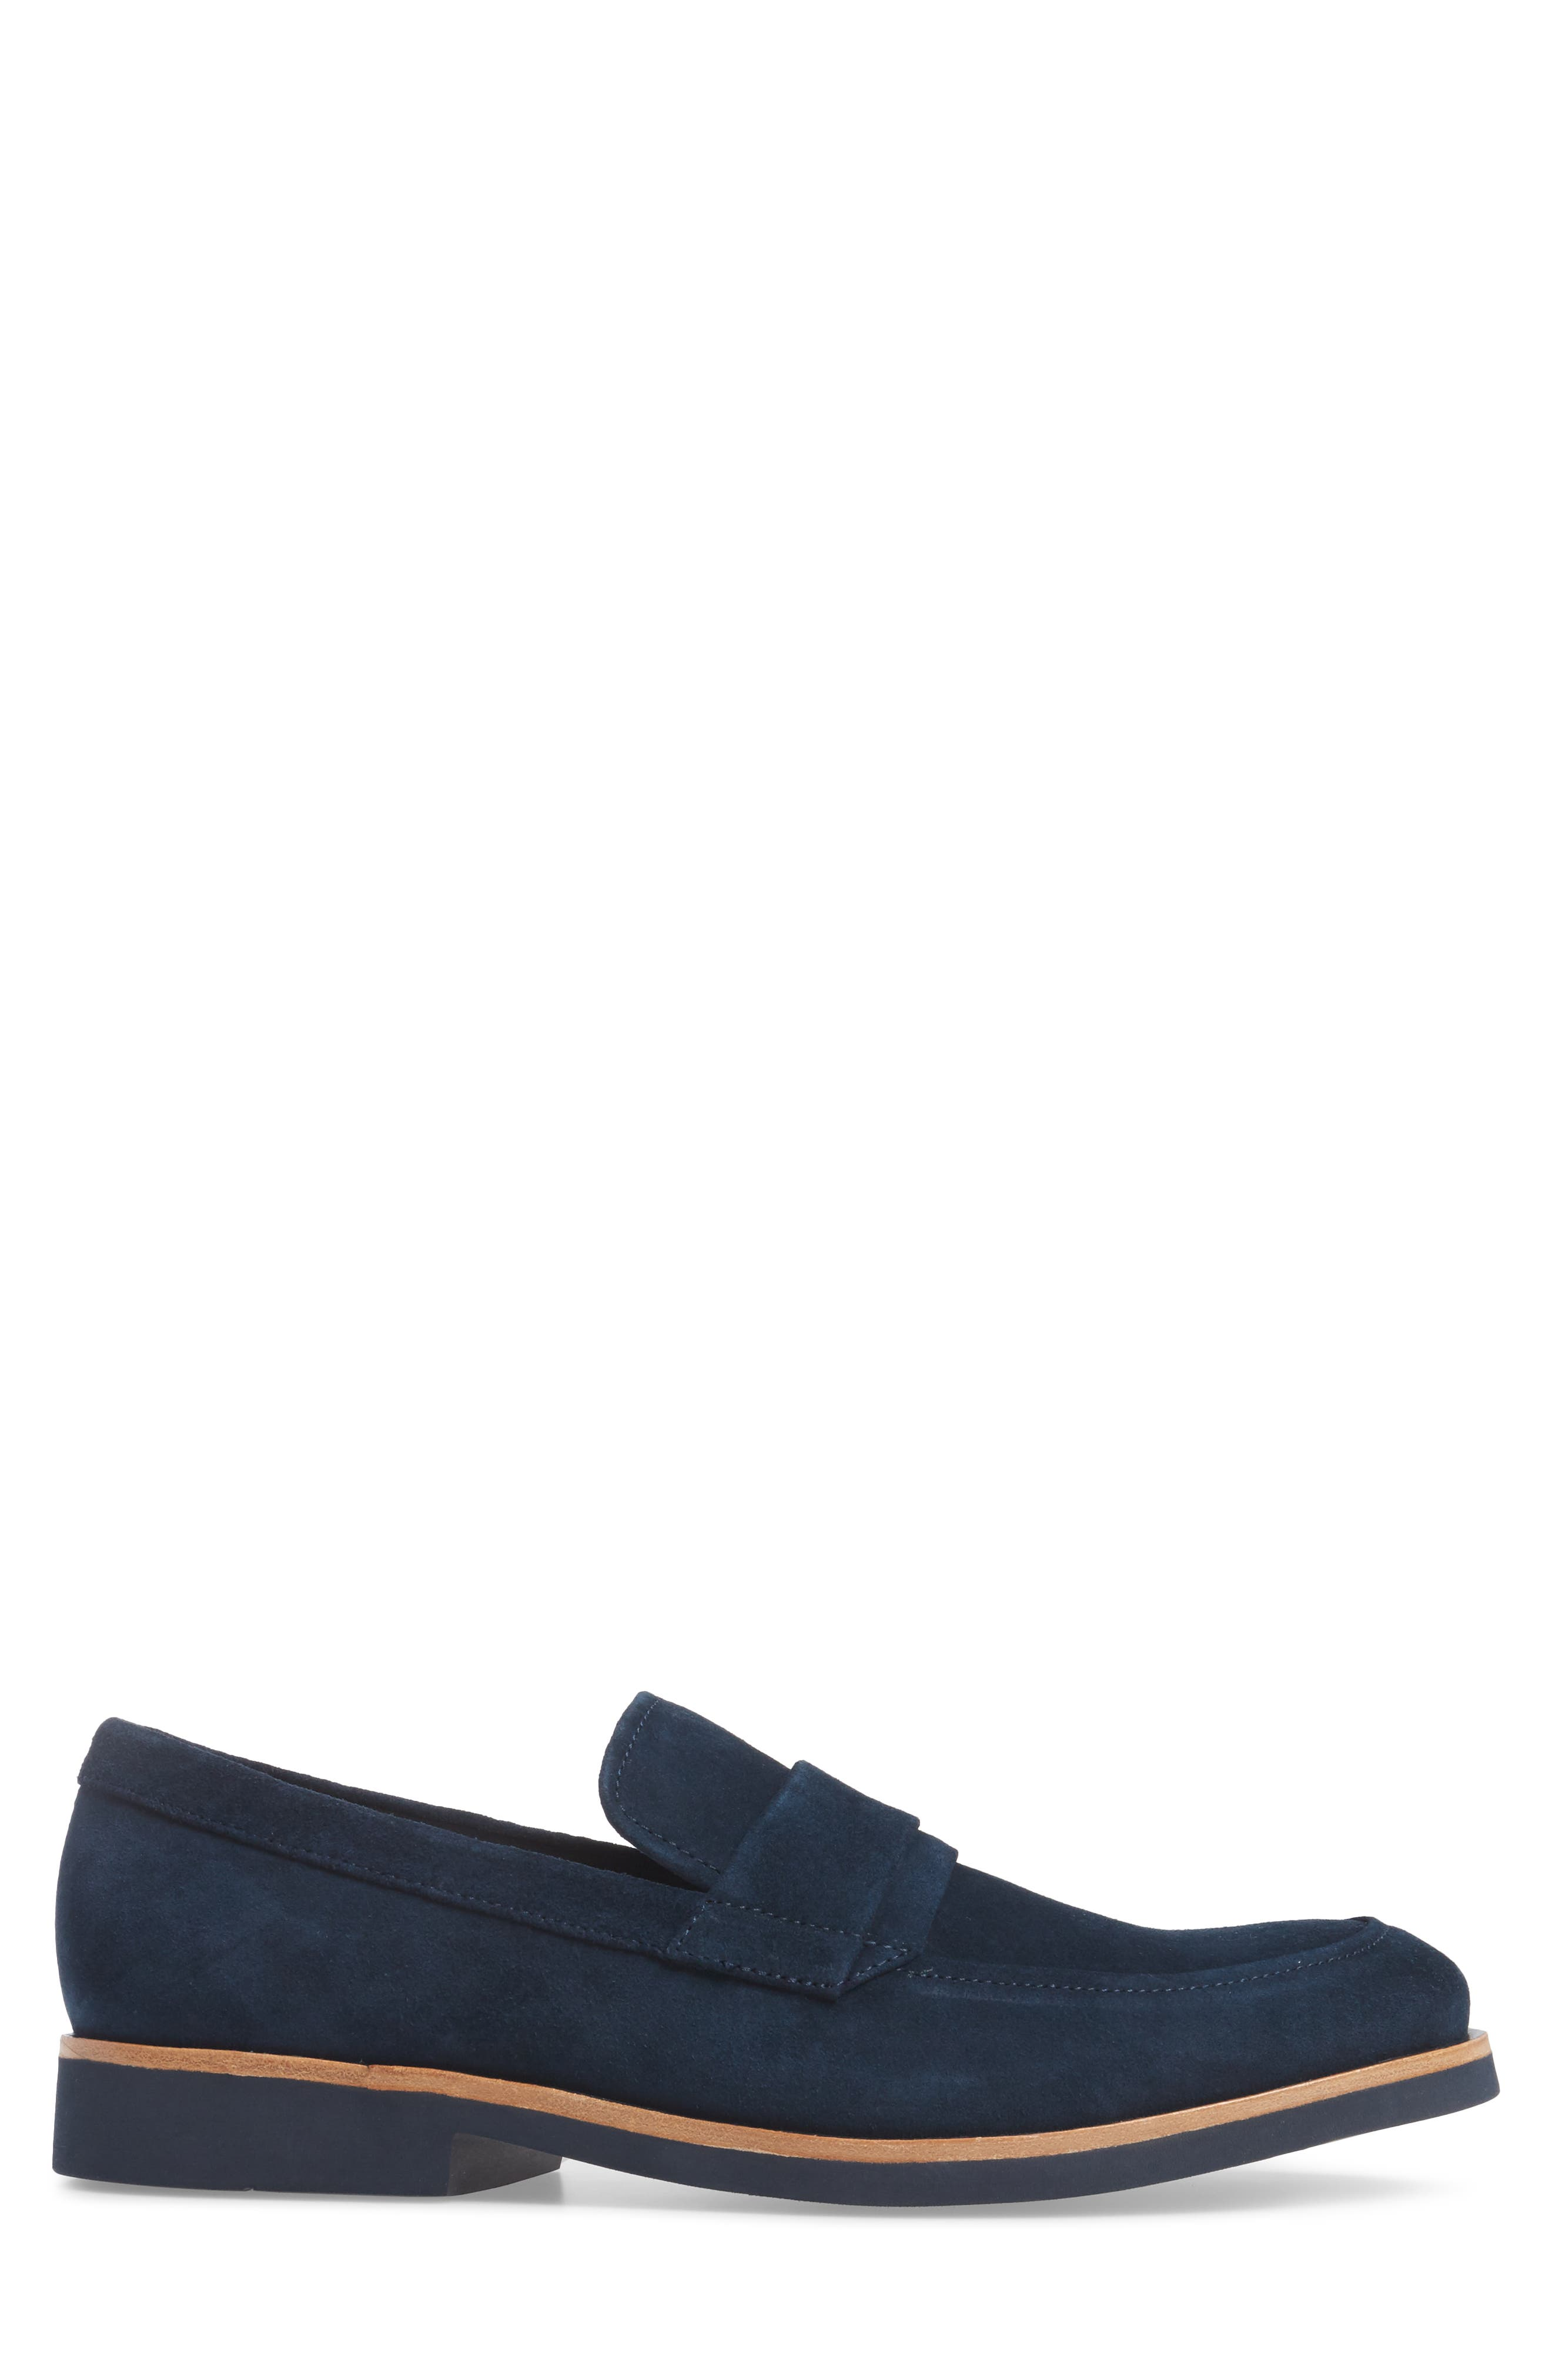 Forbes Loafer,                             Alternate thumbnail 9, color,